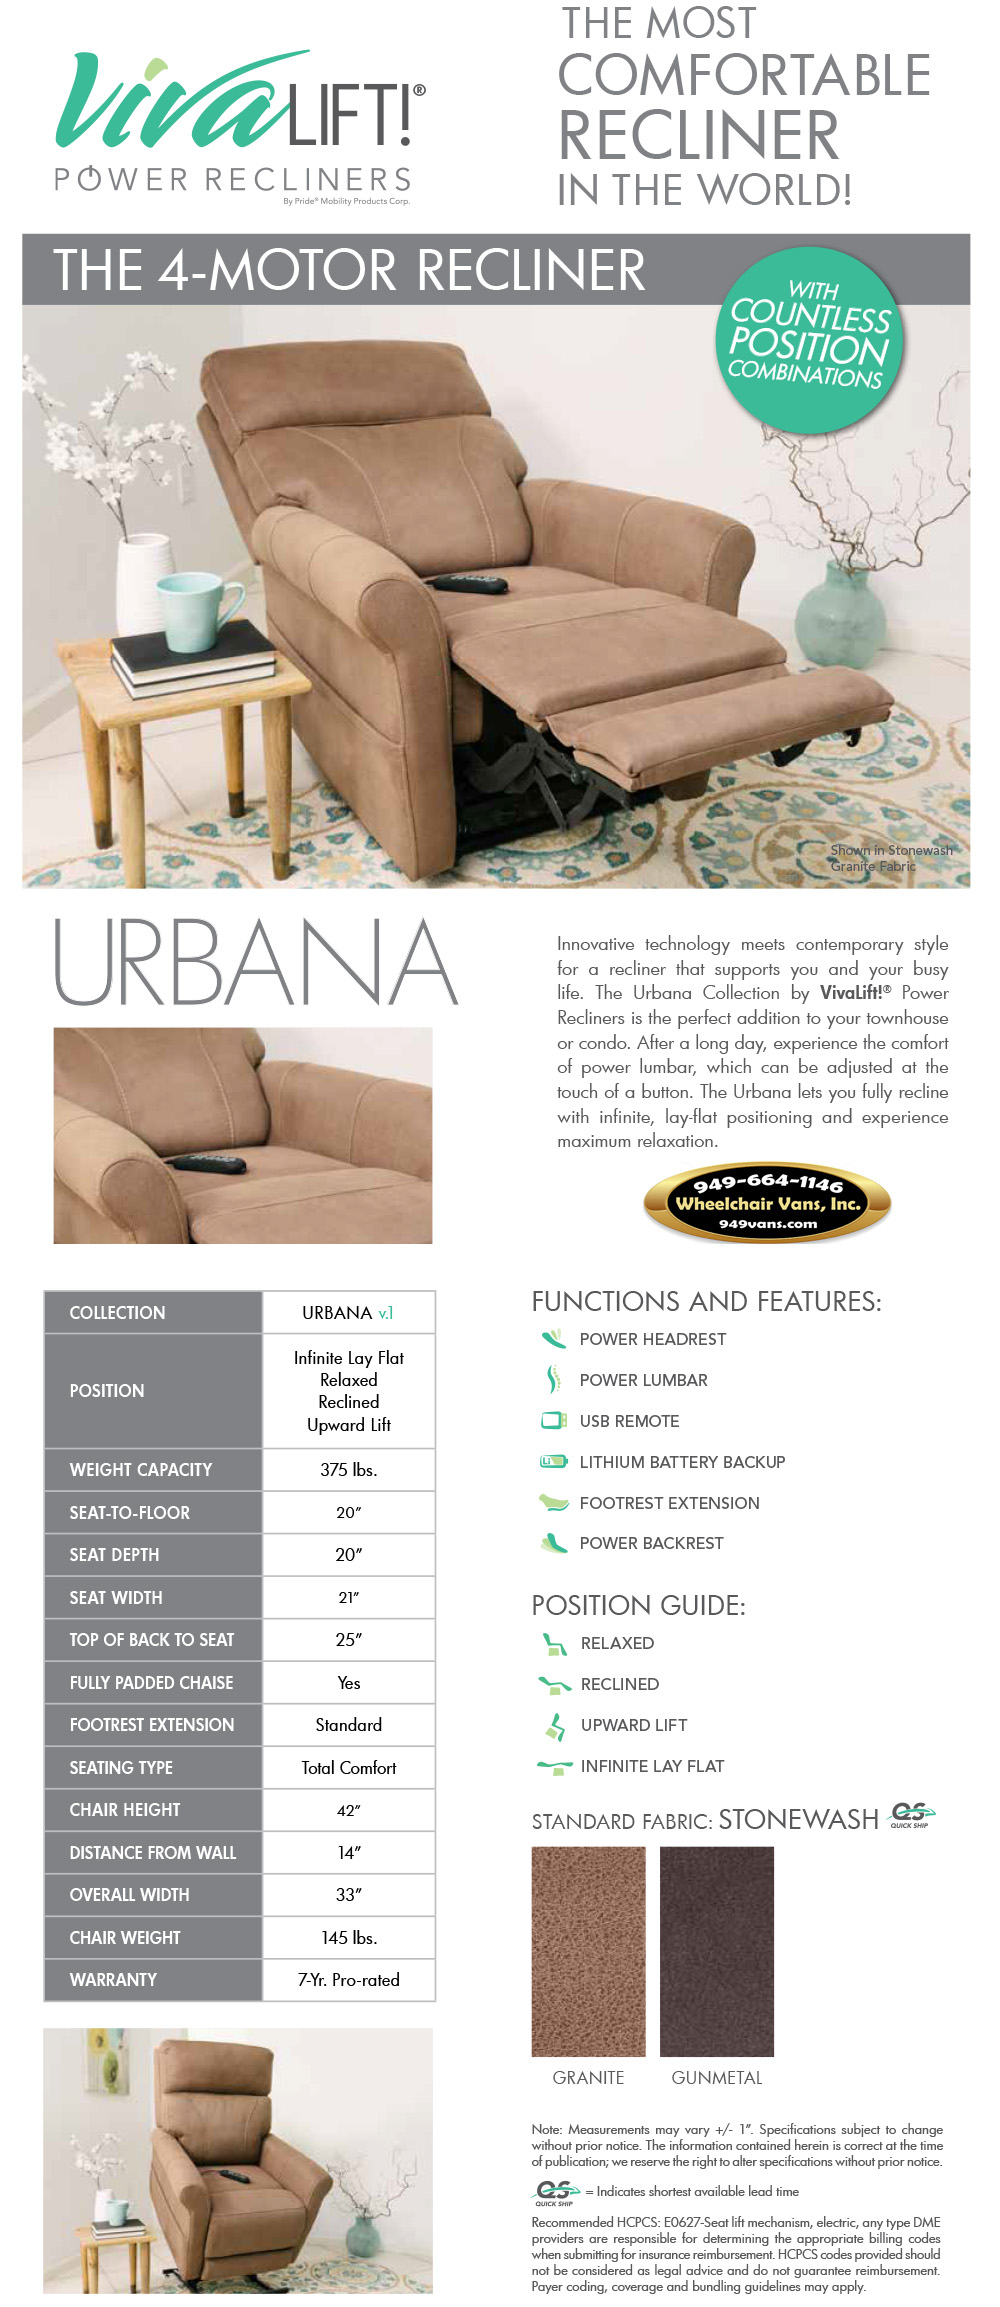 Best Prices on Pride Mobility VivaLift Urbana v.1 Liftchair Recliner Sales Event